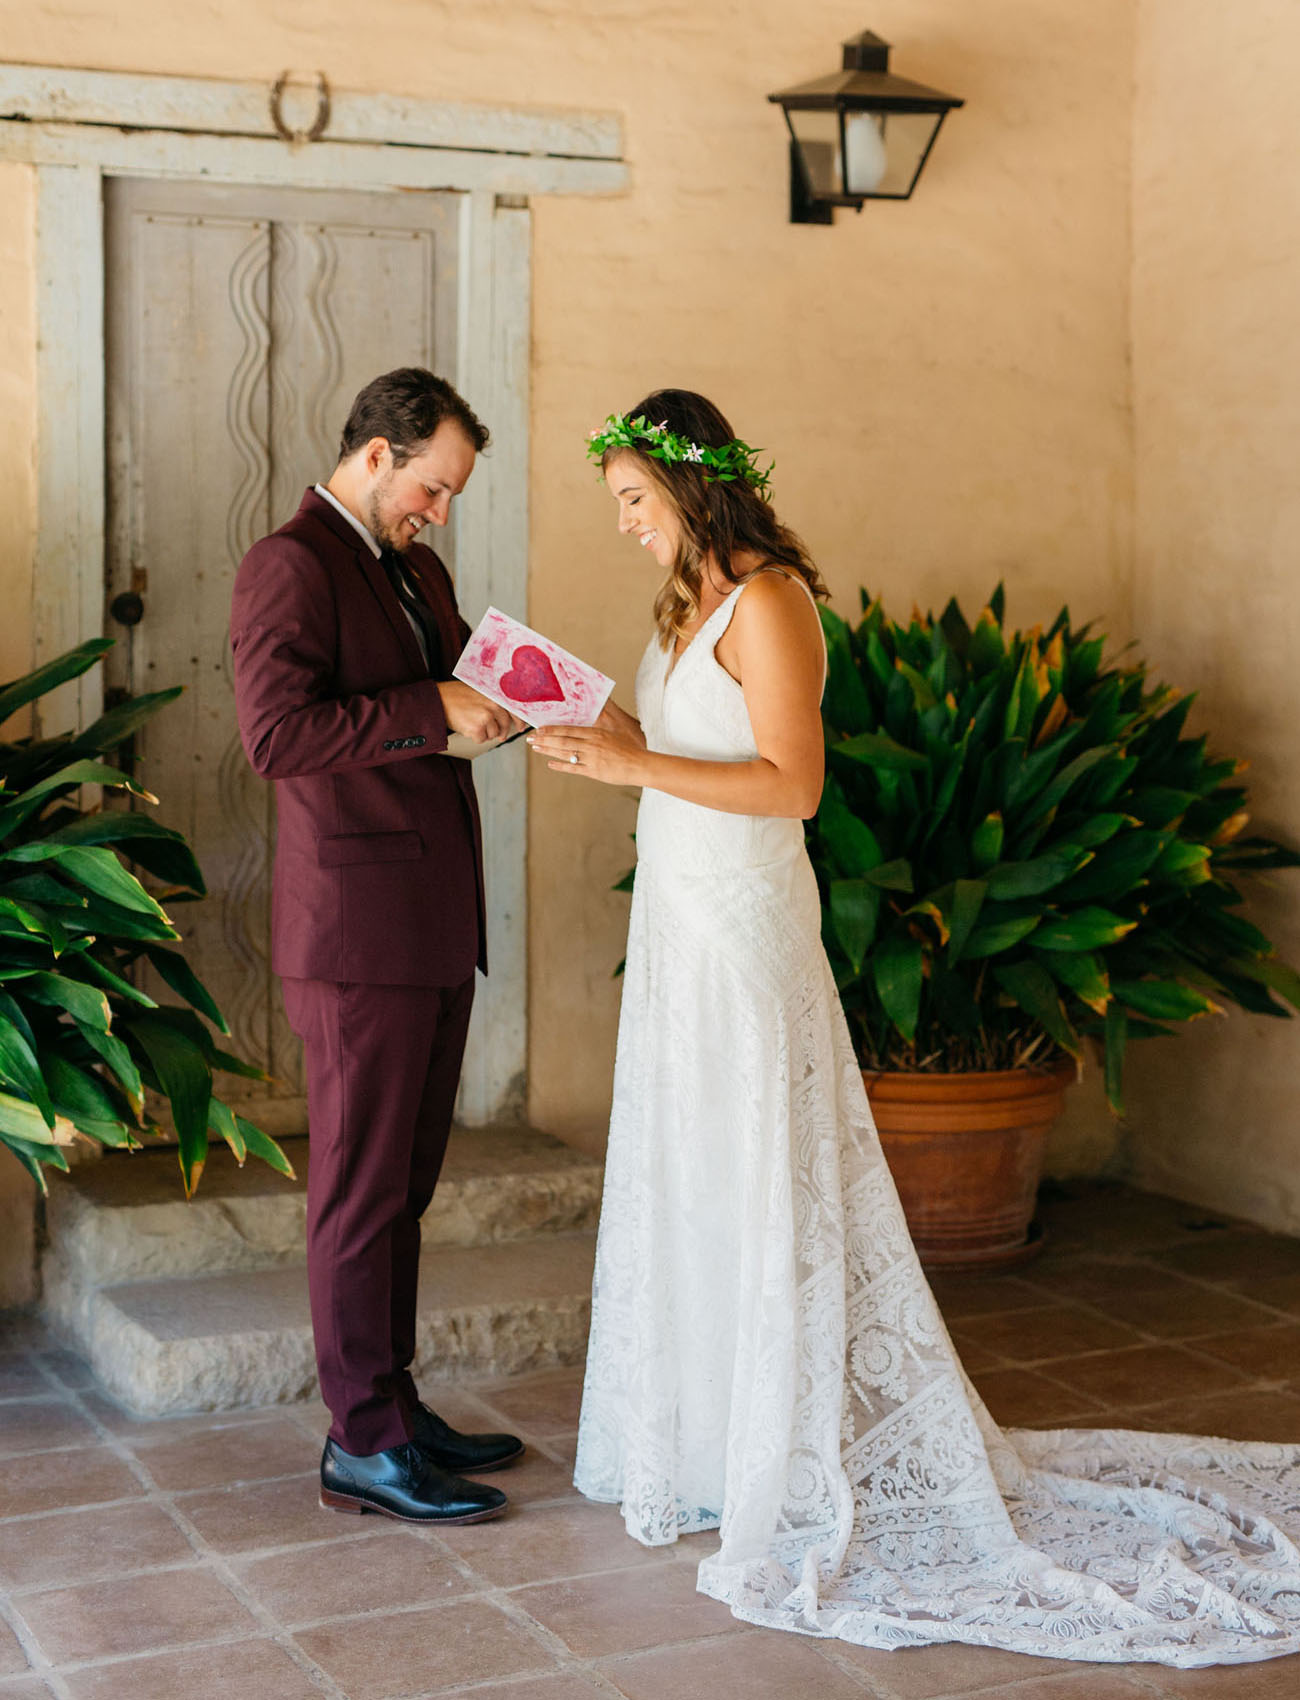 The groom was wearing a burgundy suit and black shoes, the bride was wearing a white boho lace A line dress with a train